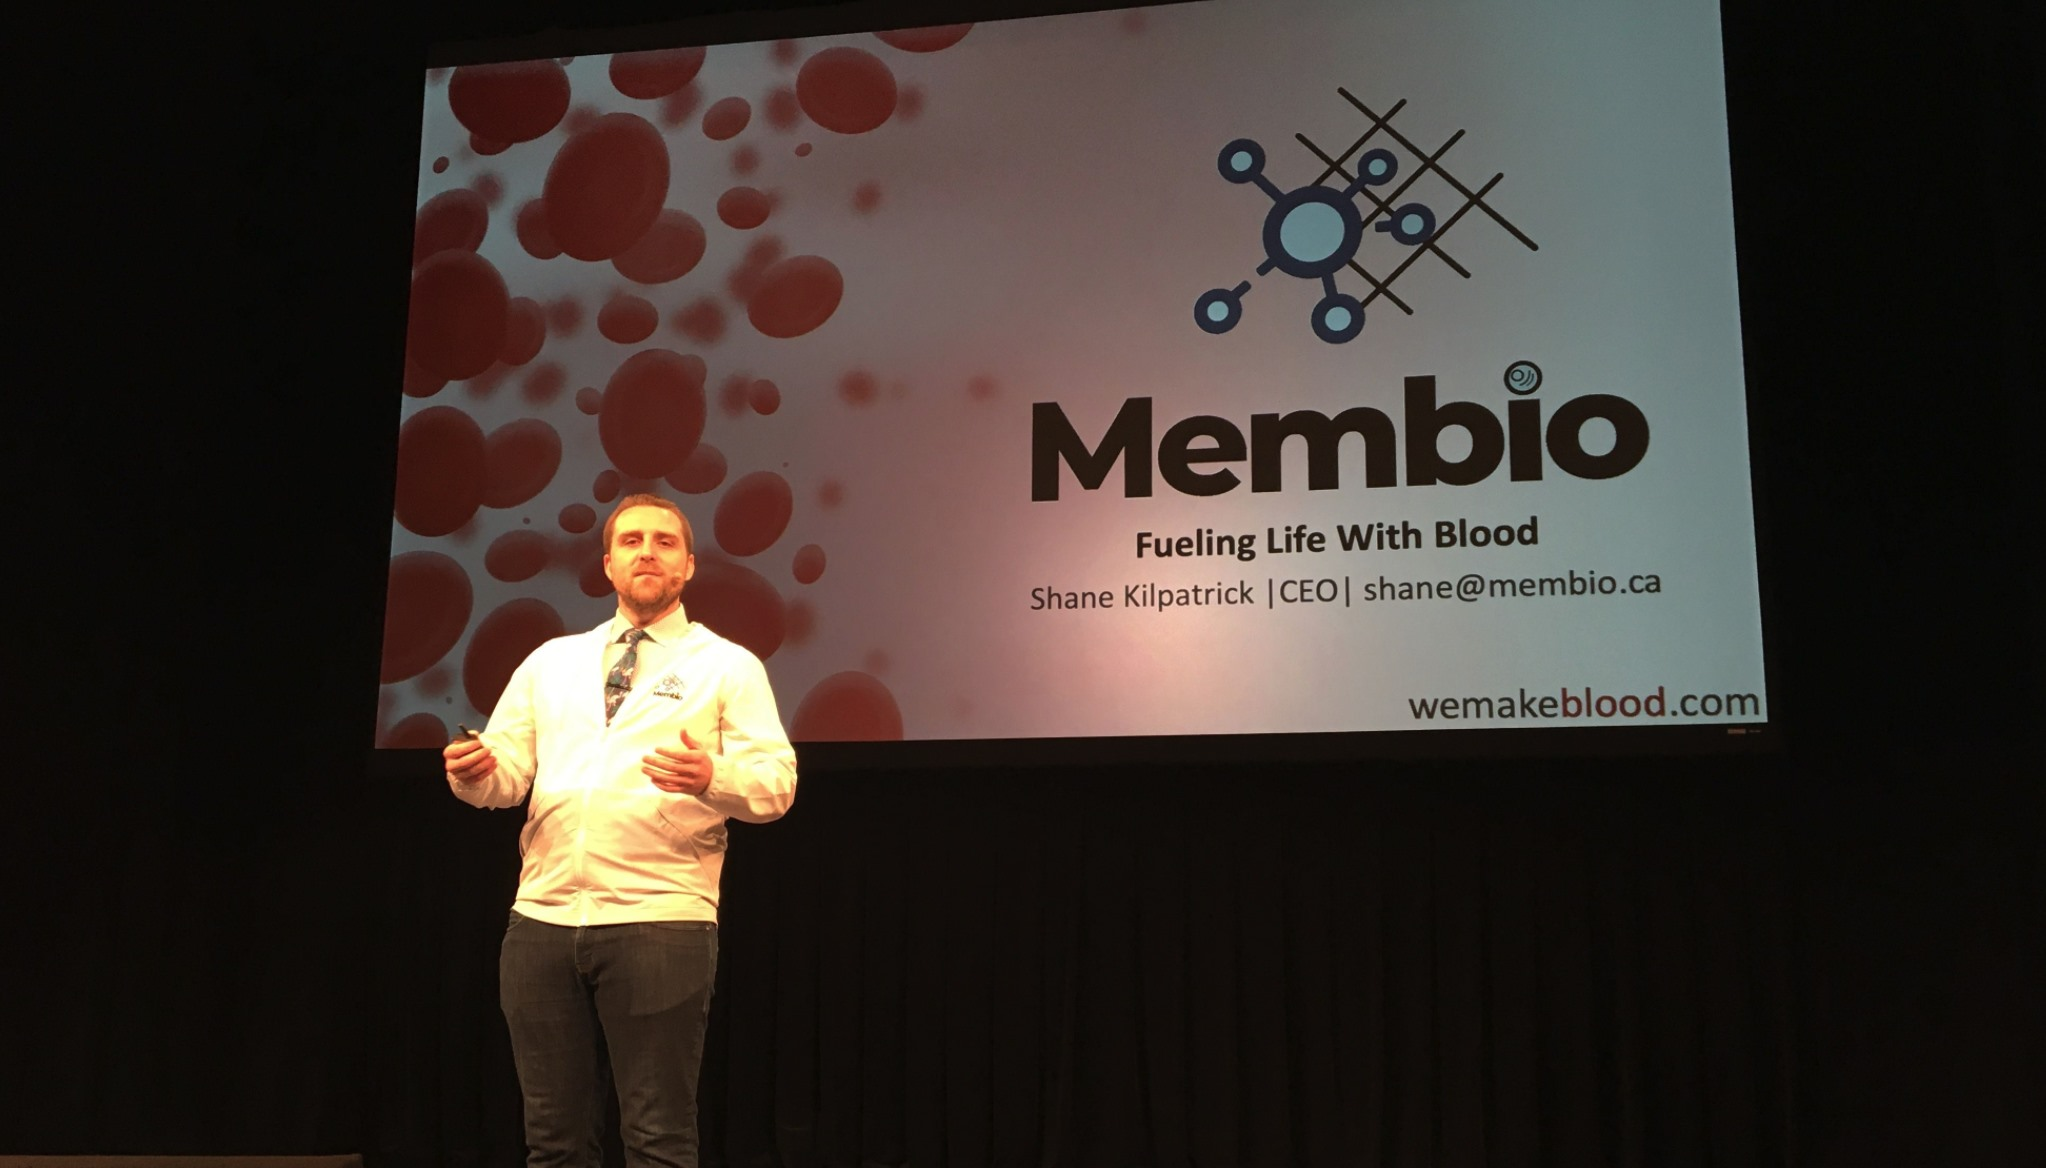 Shane Kilpatrick (MSc '17, MBET '18) is the CEO of Membio